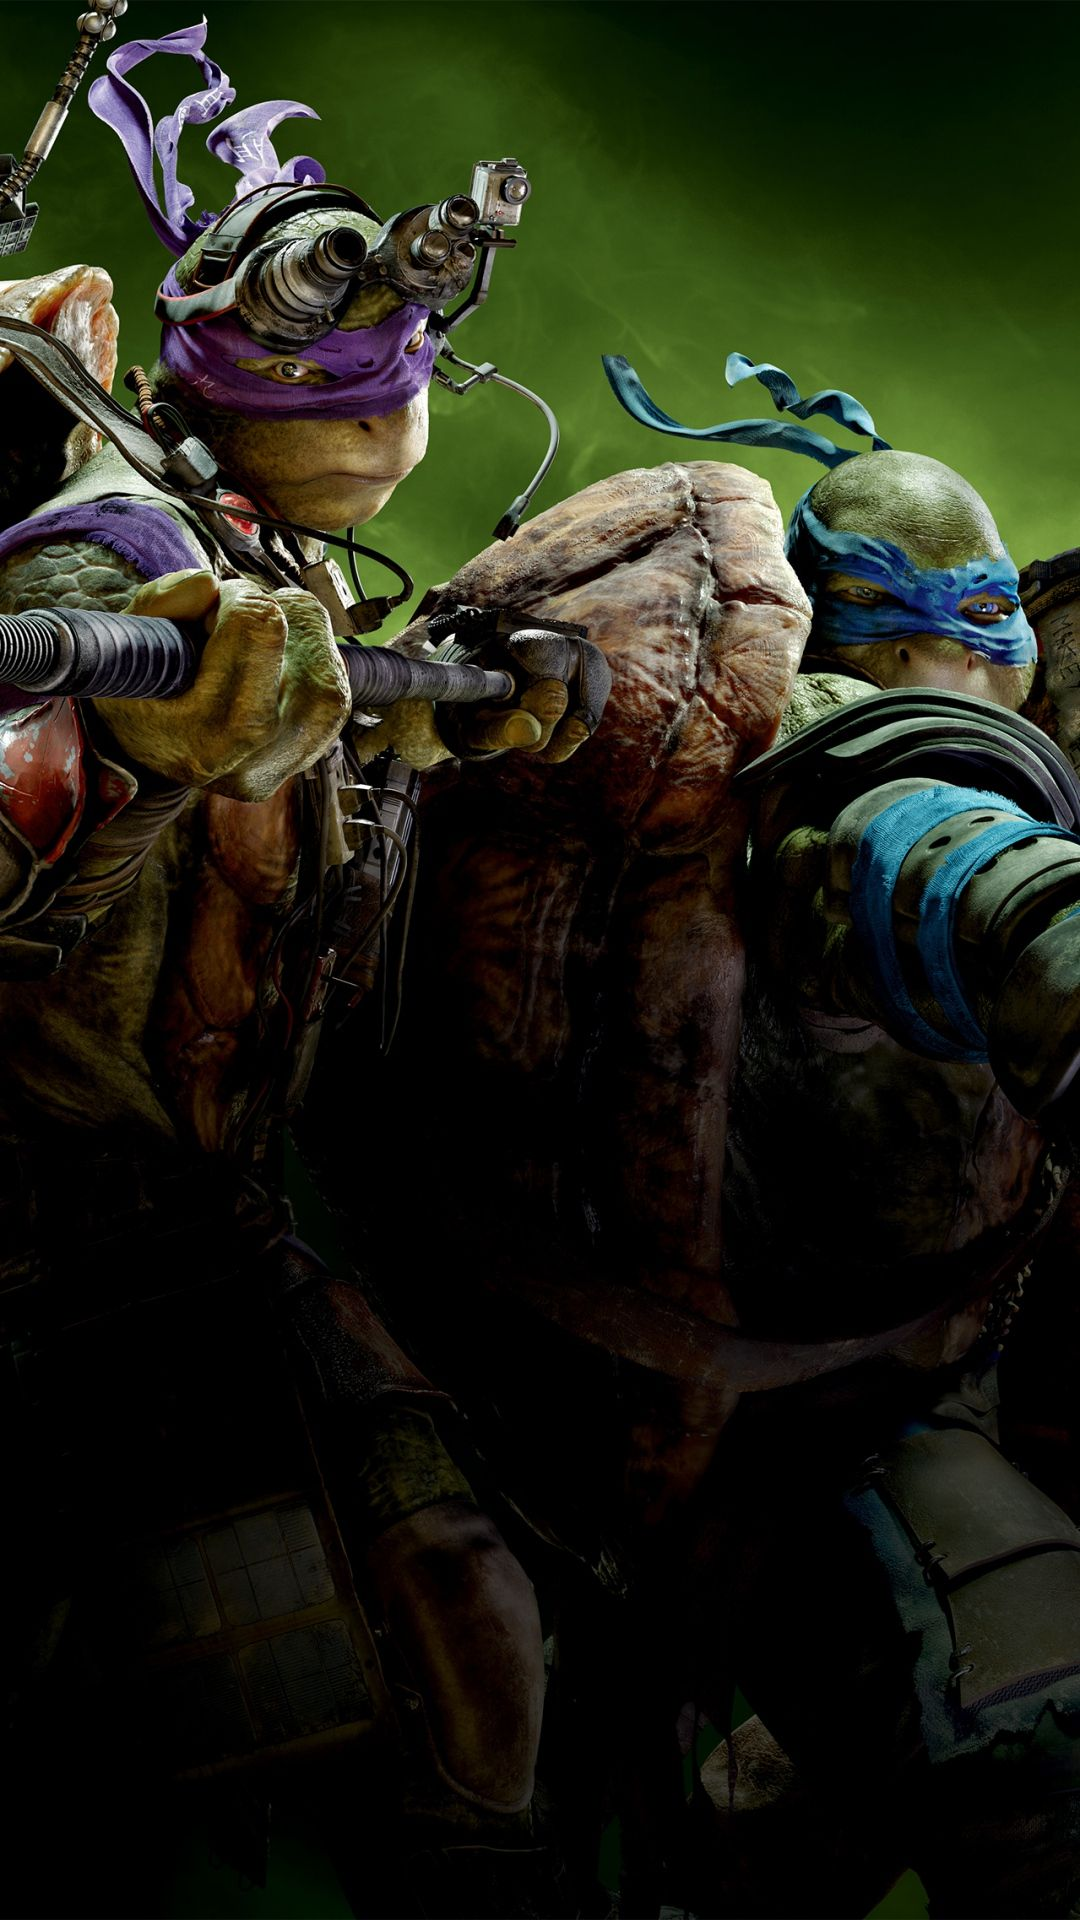 Ninja Turtle Hd Wallpaper